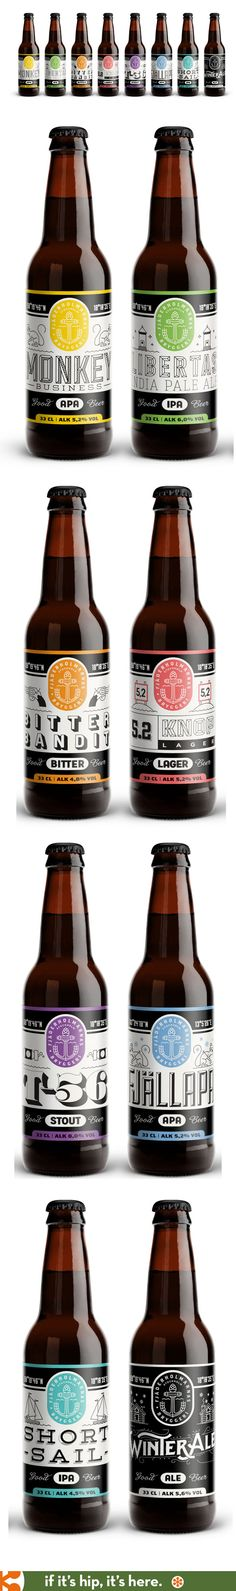 All the fabulous label designs for Fjäderholmarnas Beers.